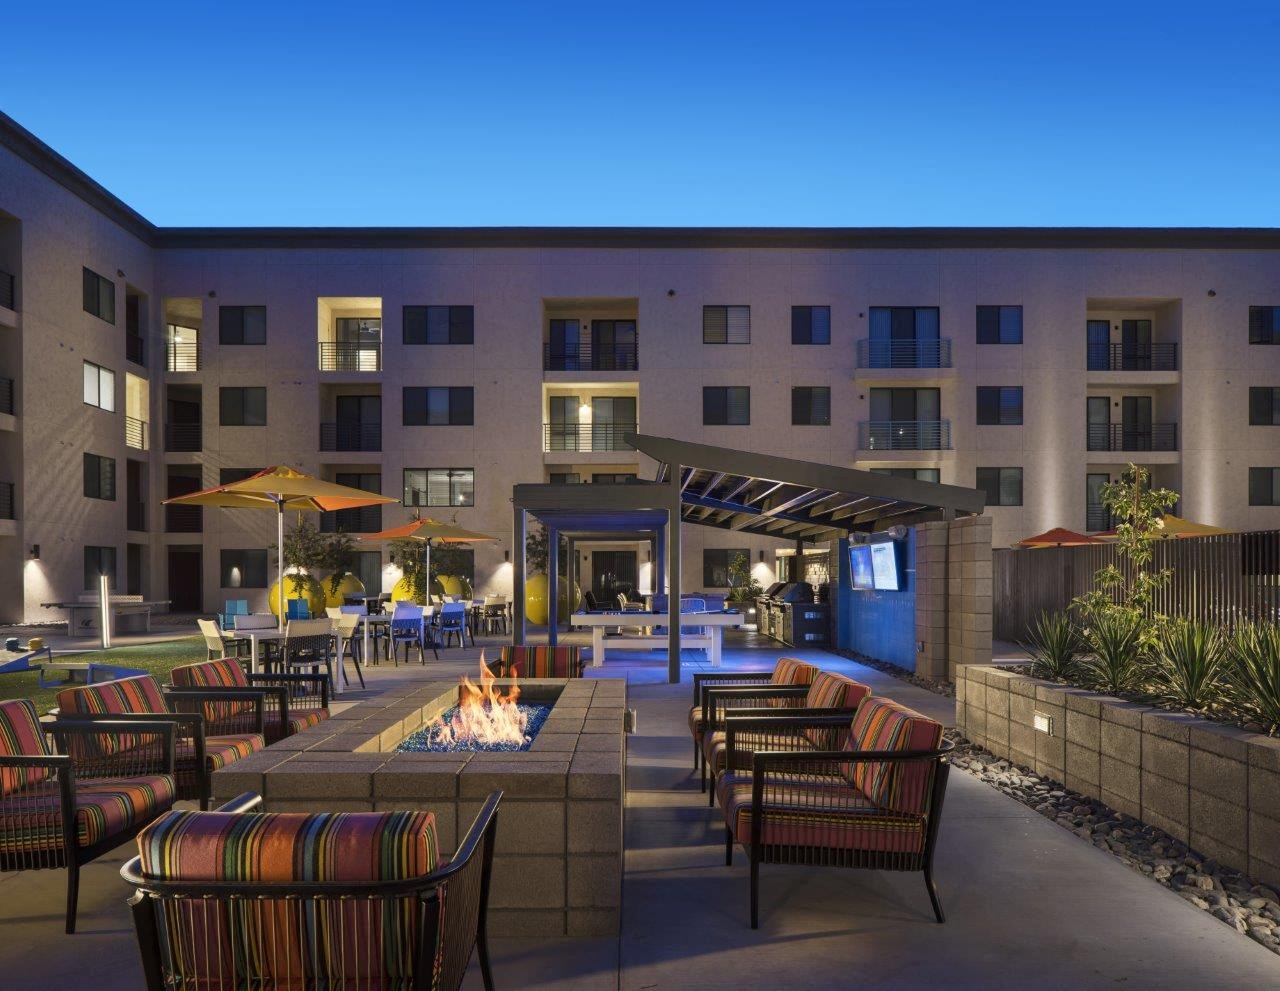 Outdoor entertainment ramada with TVs and Pool table